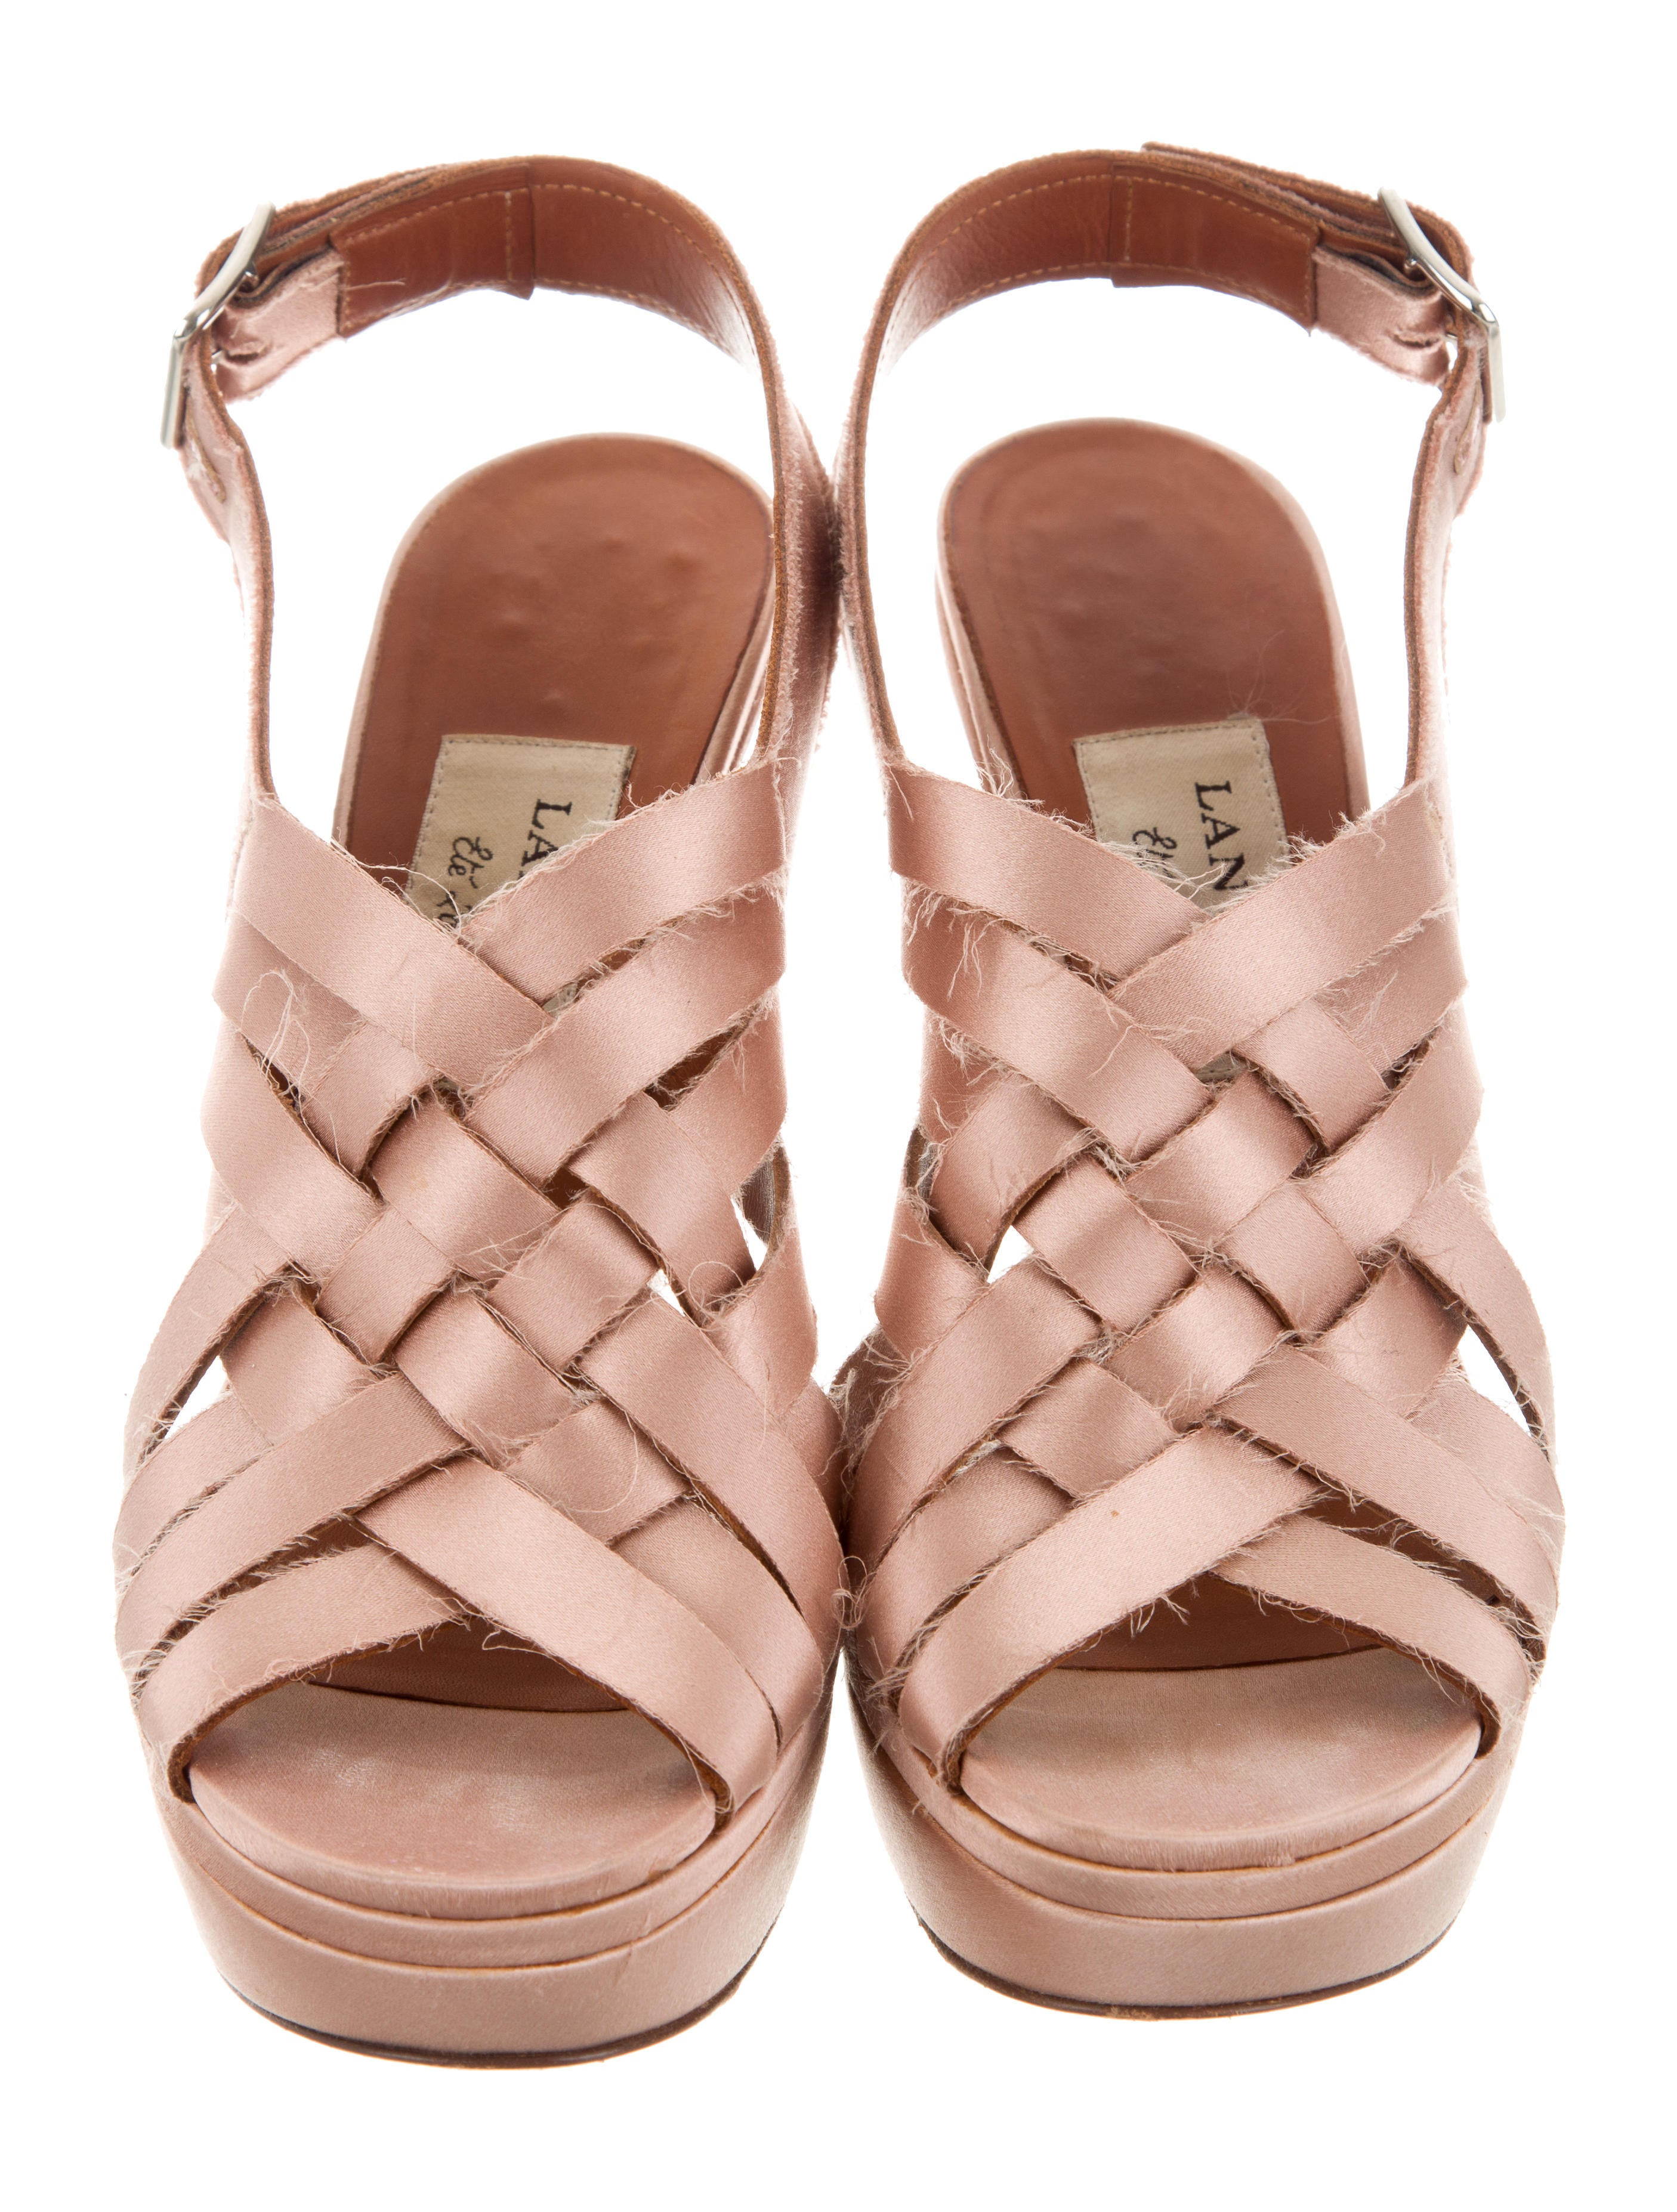 Lanvin Satin Crossover Sandals